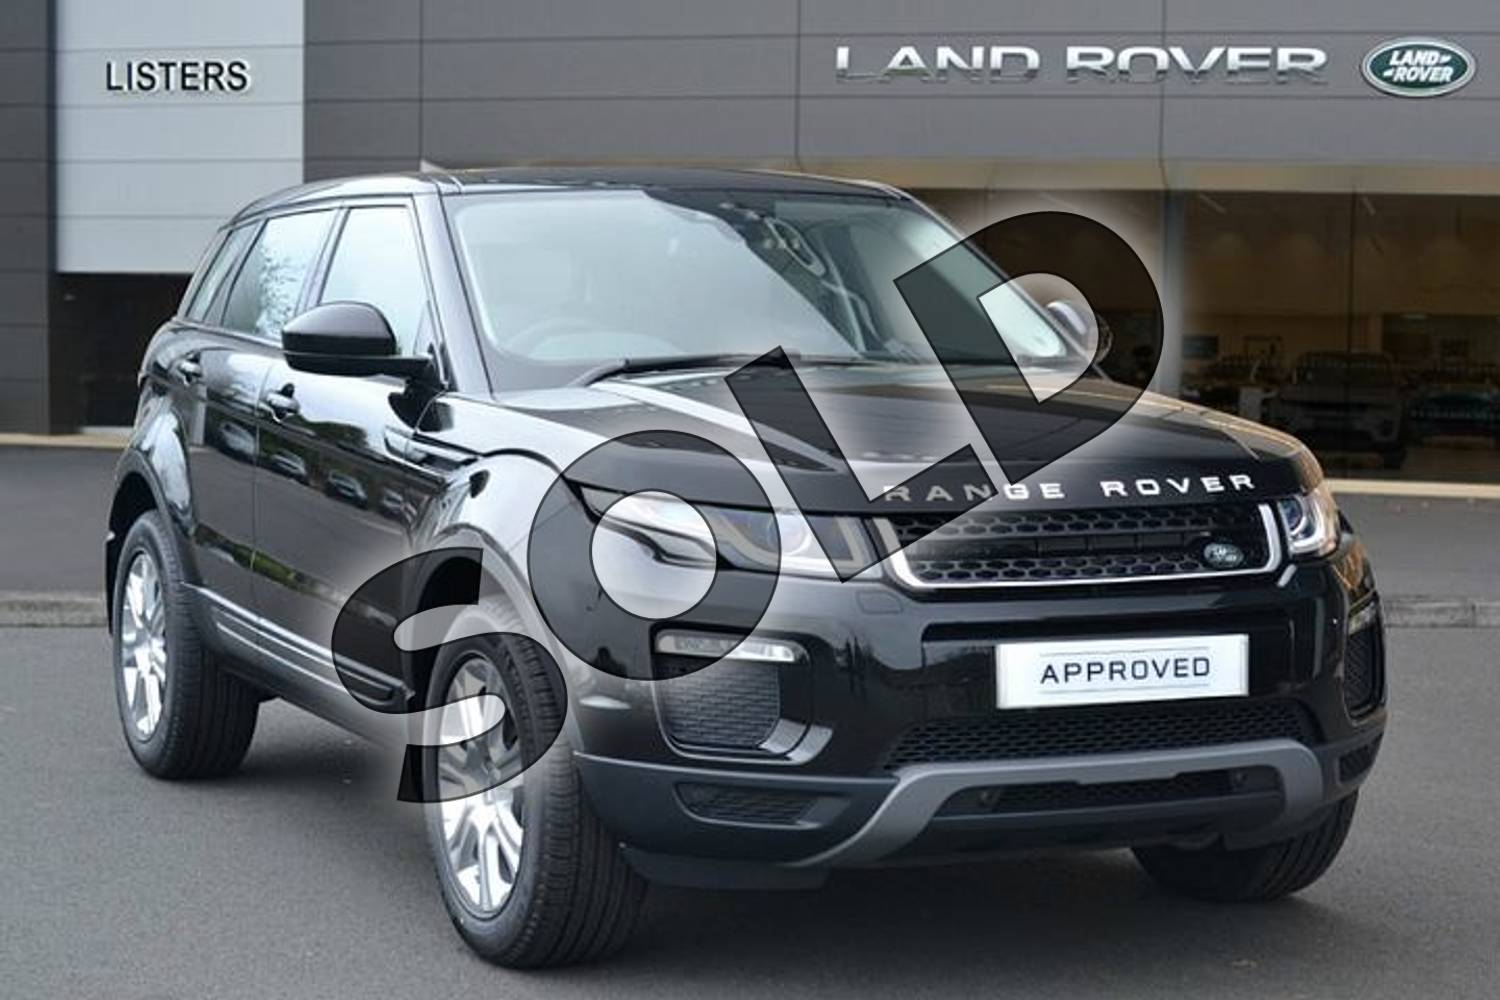 2018 Range Rover Evoque Diesel Hatchback Diesel 2.0 TD4 SE Tech 5dr Auto in Santorini Black at Listers Land Rover Hereford